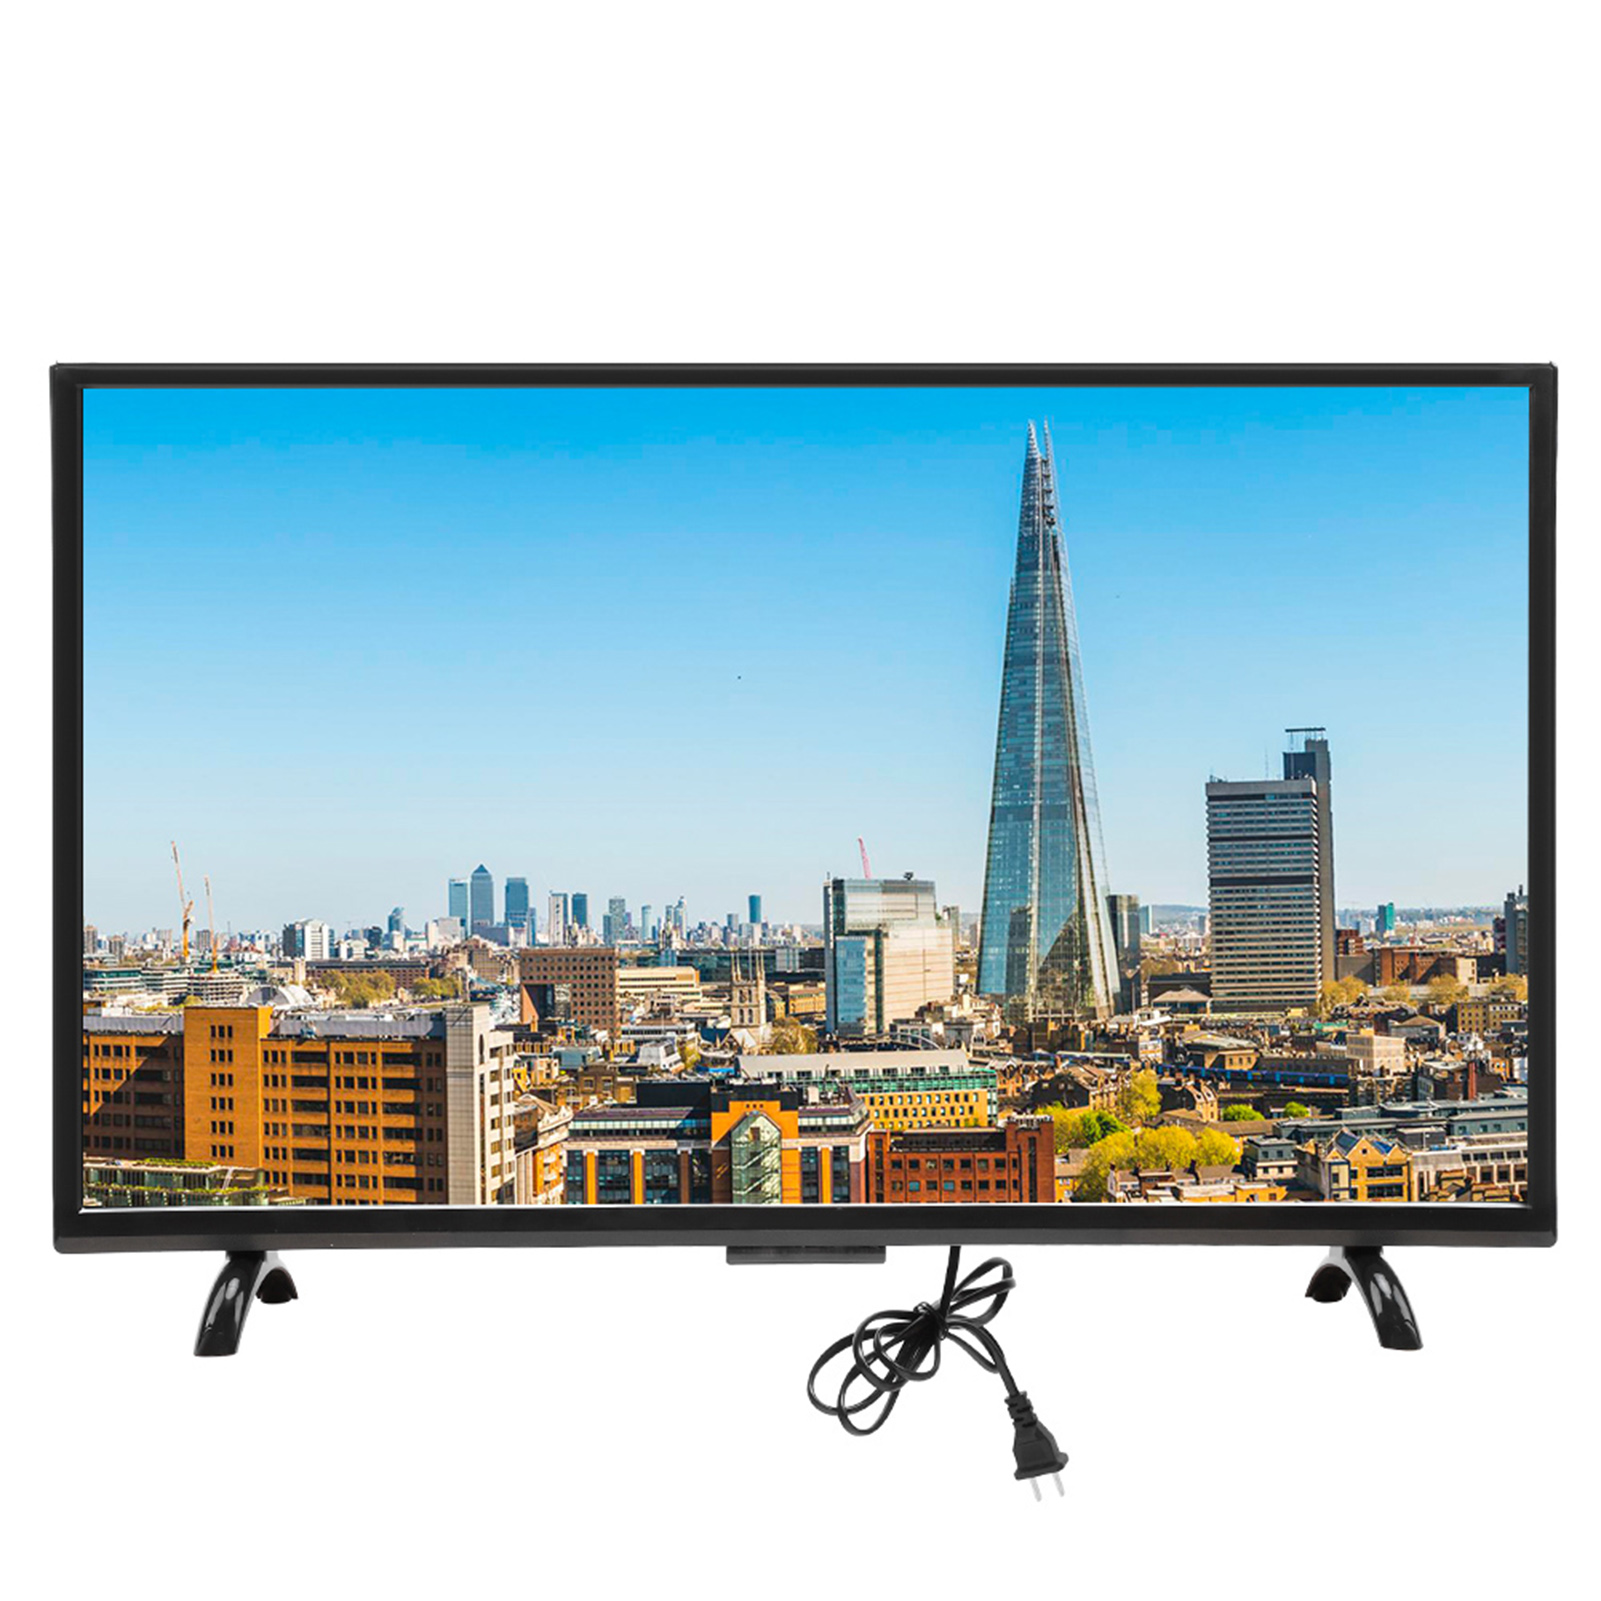 32-034-43-034-55-034-4K-HD-SMART-LED-TV-WiFi-pantalla-curvada-Ethernet-television-Android miniatura 21